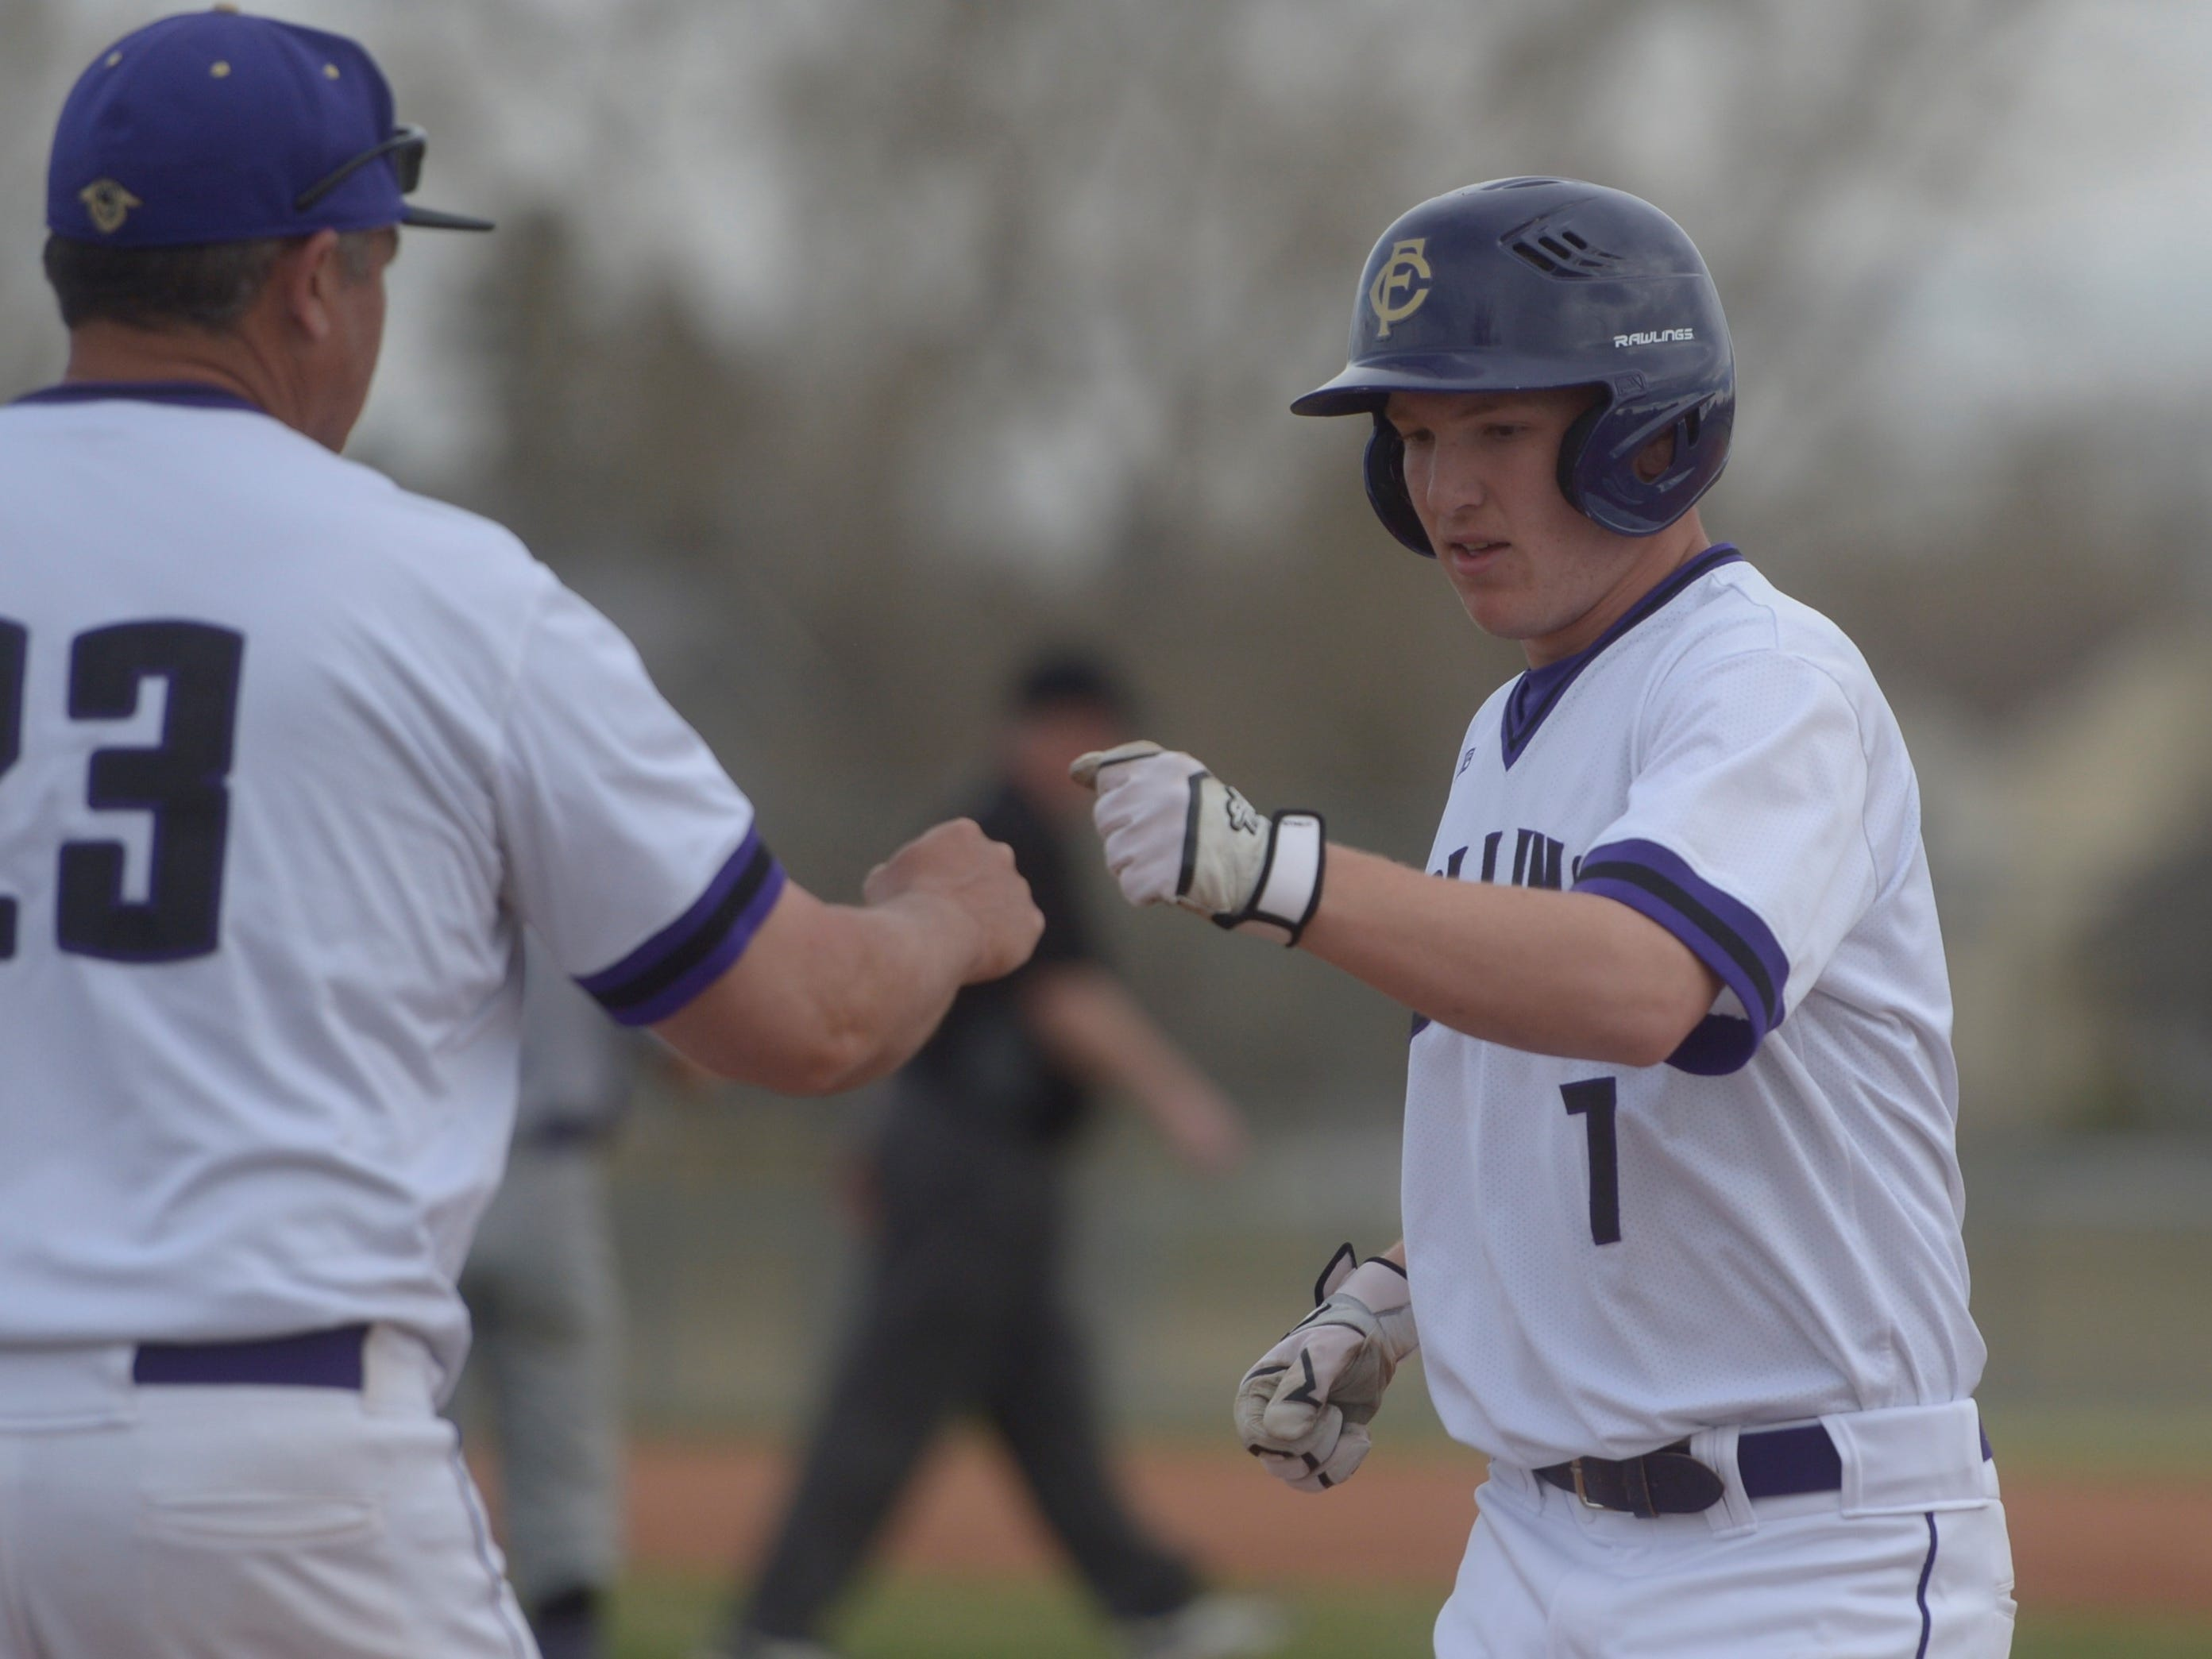 Fort Collins High School outfielder Drew Norsen fist-bumps assistant coach Keith Aragon after a base hit during a game against Denver South on Monday, April 8, 2019. The Lambkins won 13-3 to move to 10-0 on the season.